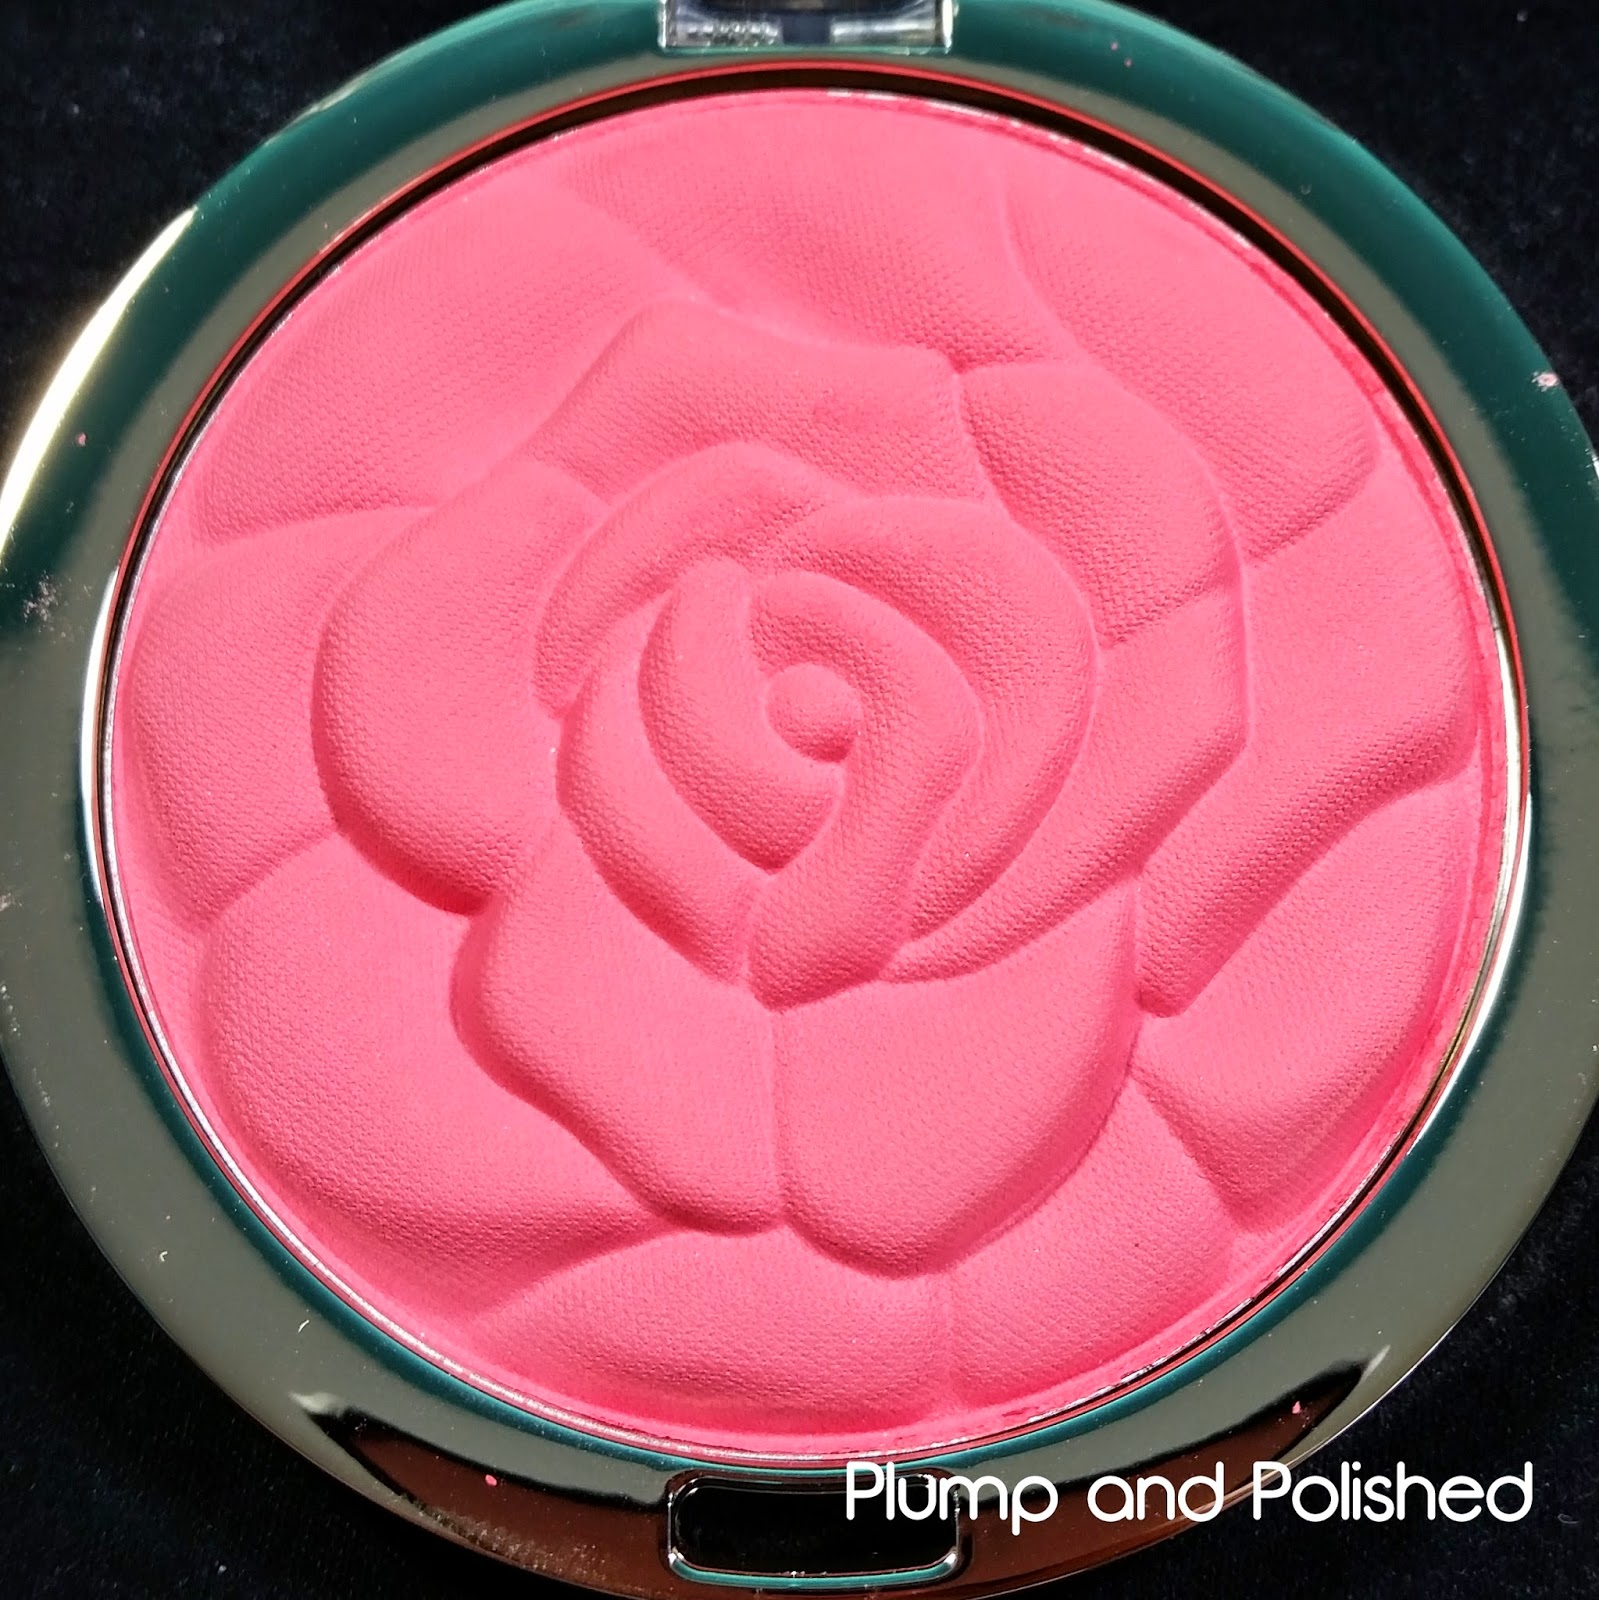 Milani - Rose Powder Blushes [Spring 2015] 05 Coral Cove